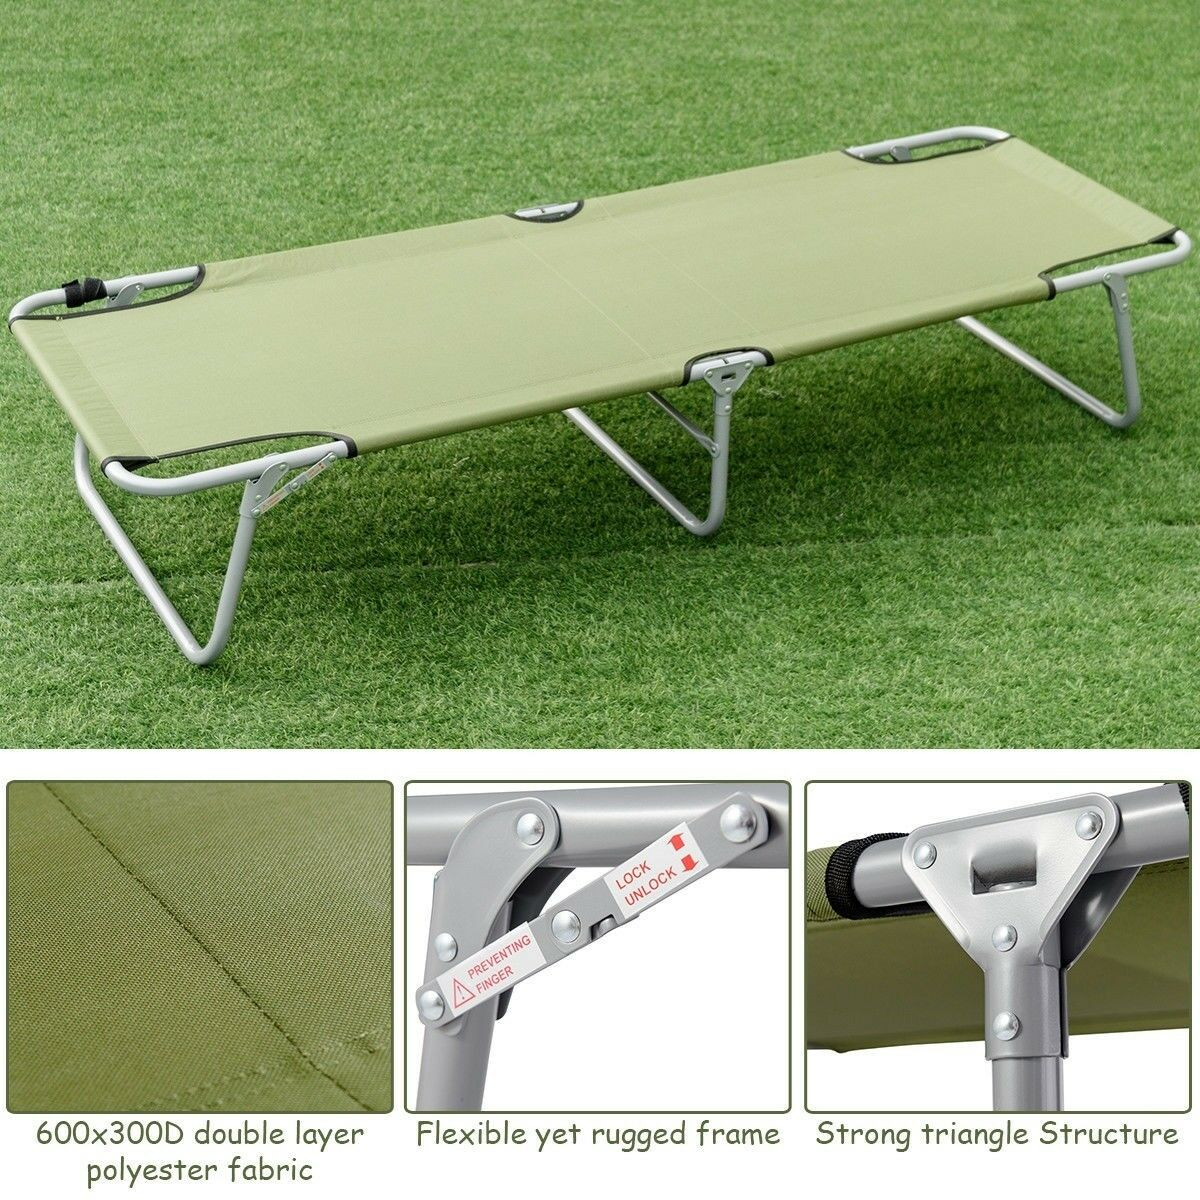 Outdoor Travel Camping Portable Bed  Army Military Foldable Tent Cot Bed 250 lbs  guaranteed